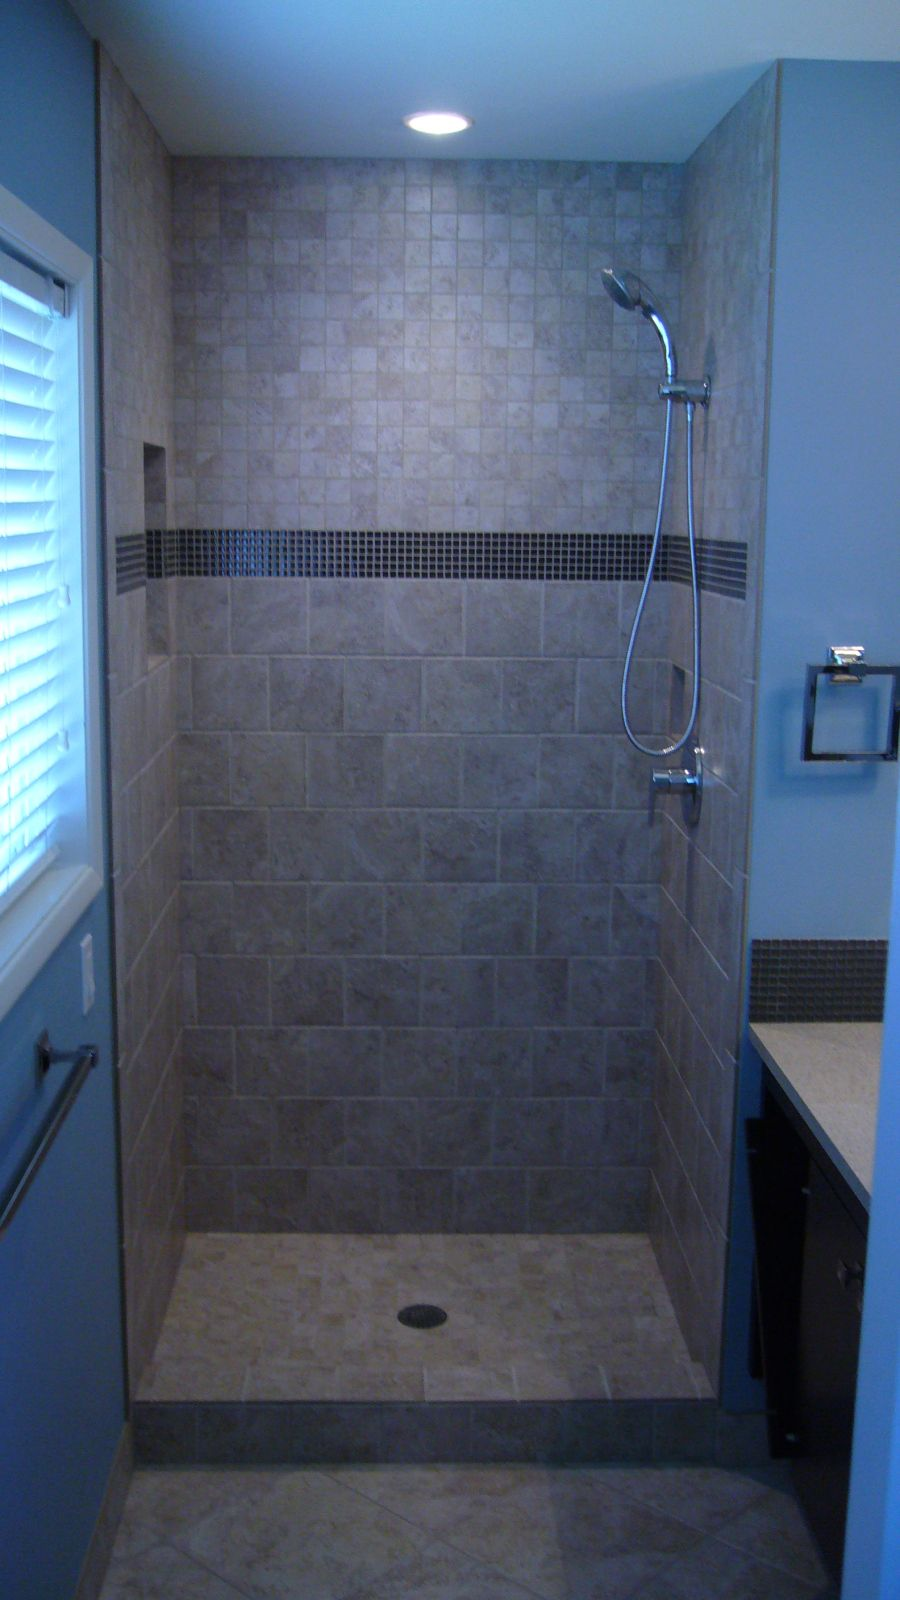 New Tiled shower stall | Bathroom updates | Pinterest | Building ...